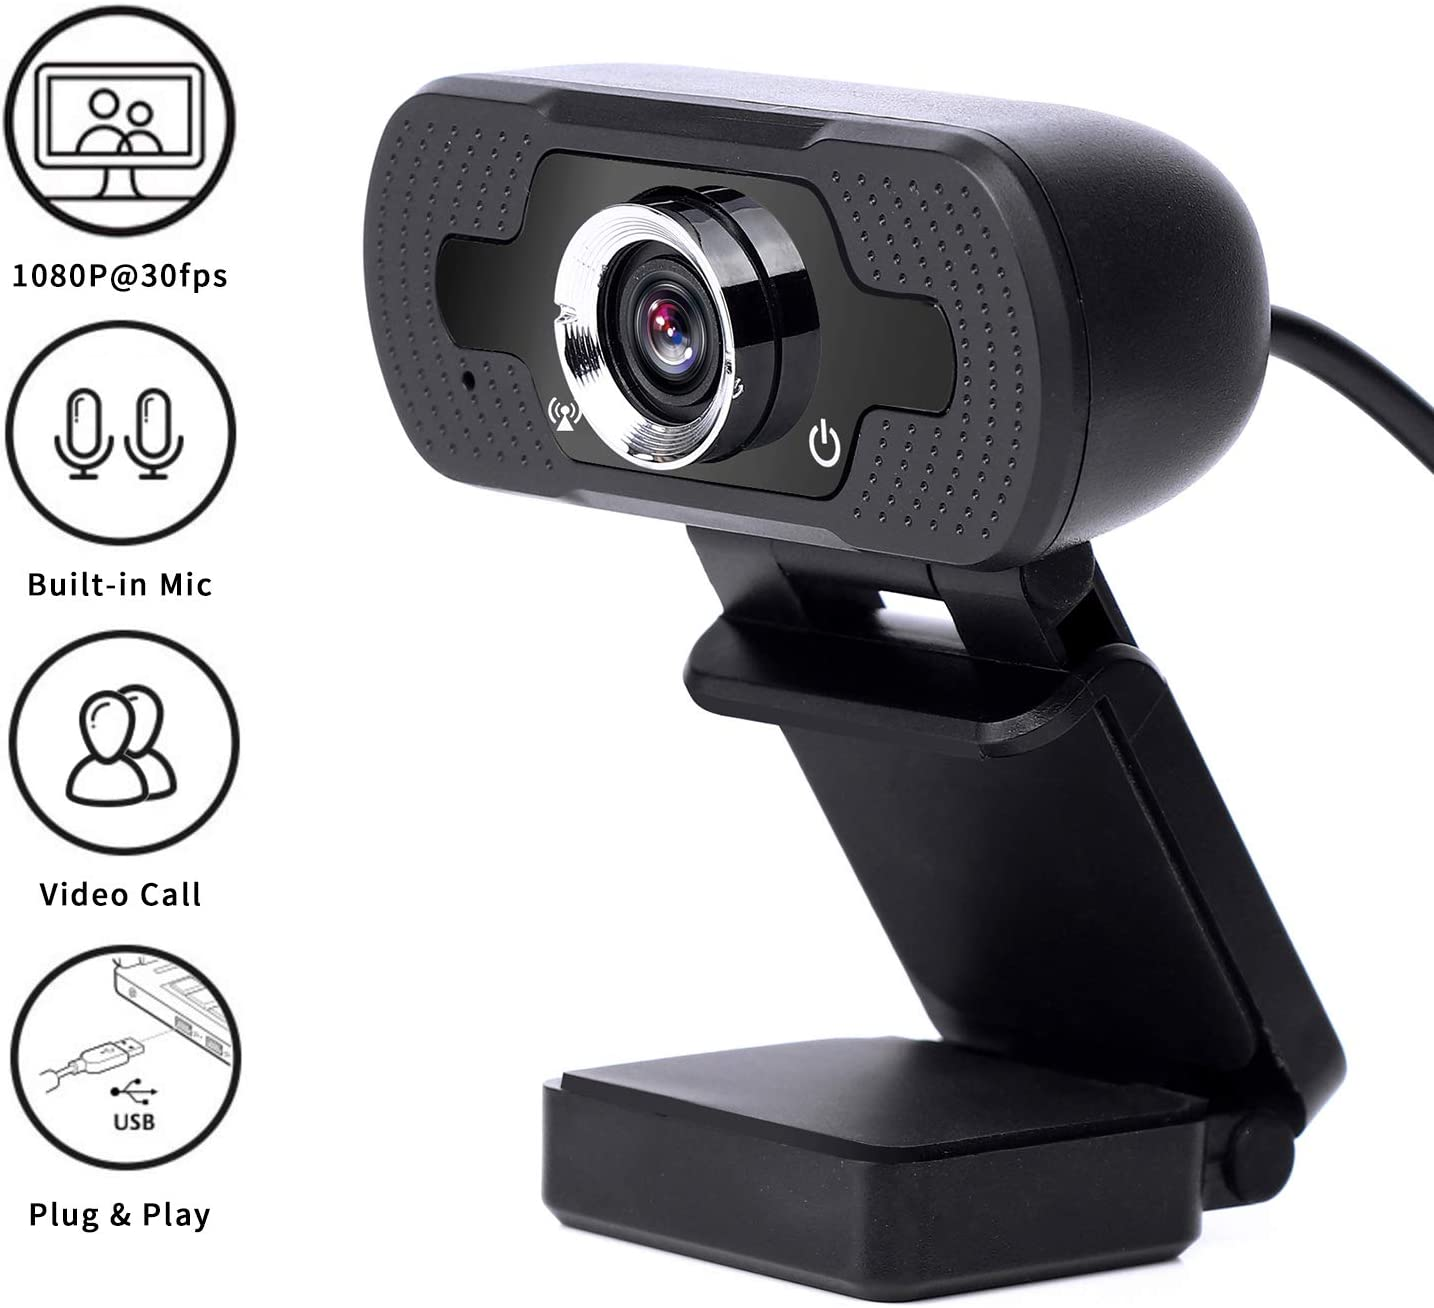 Webcam with Microphone,1080P HD Web cam,Streaming Computer Web Camera,USB Camera for PC Laptop Desktop Mac Video Calling, Recording,Conference